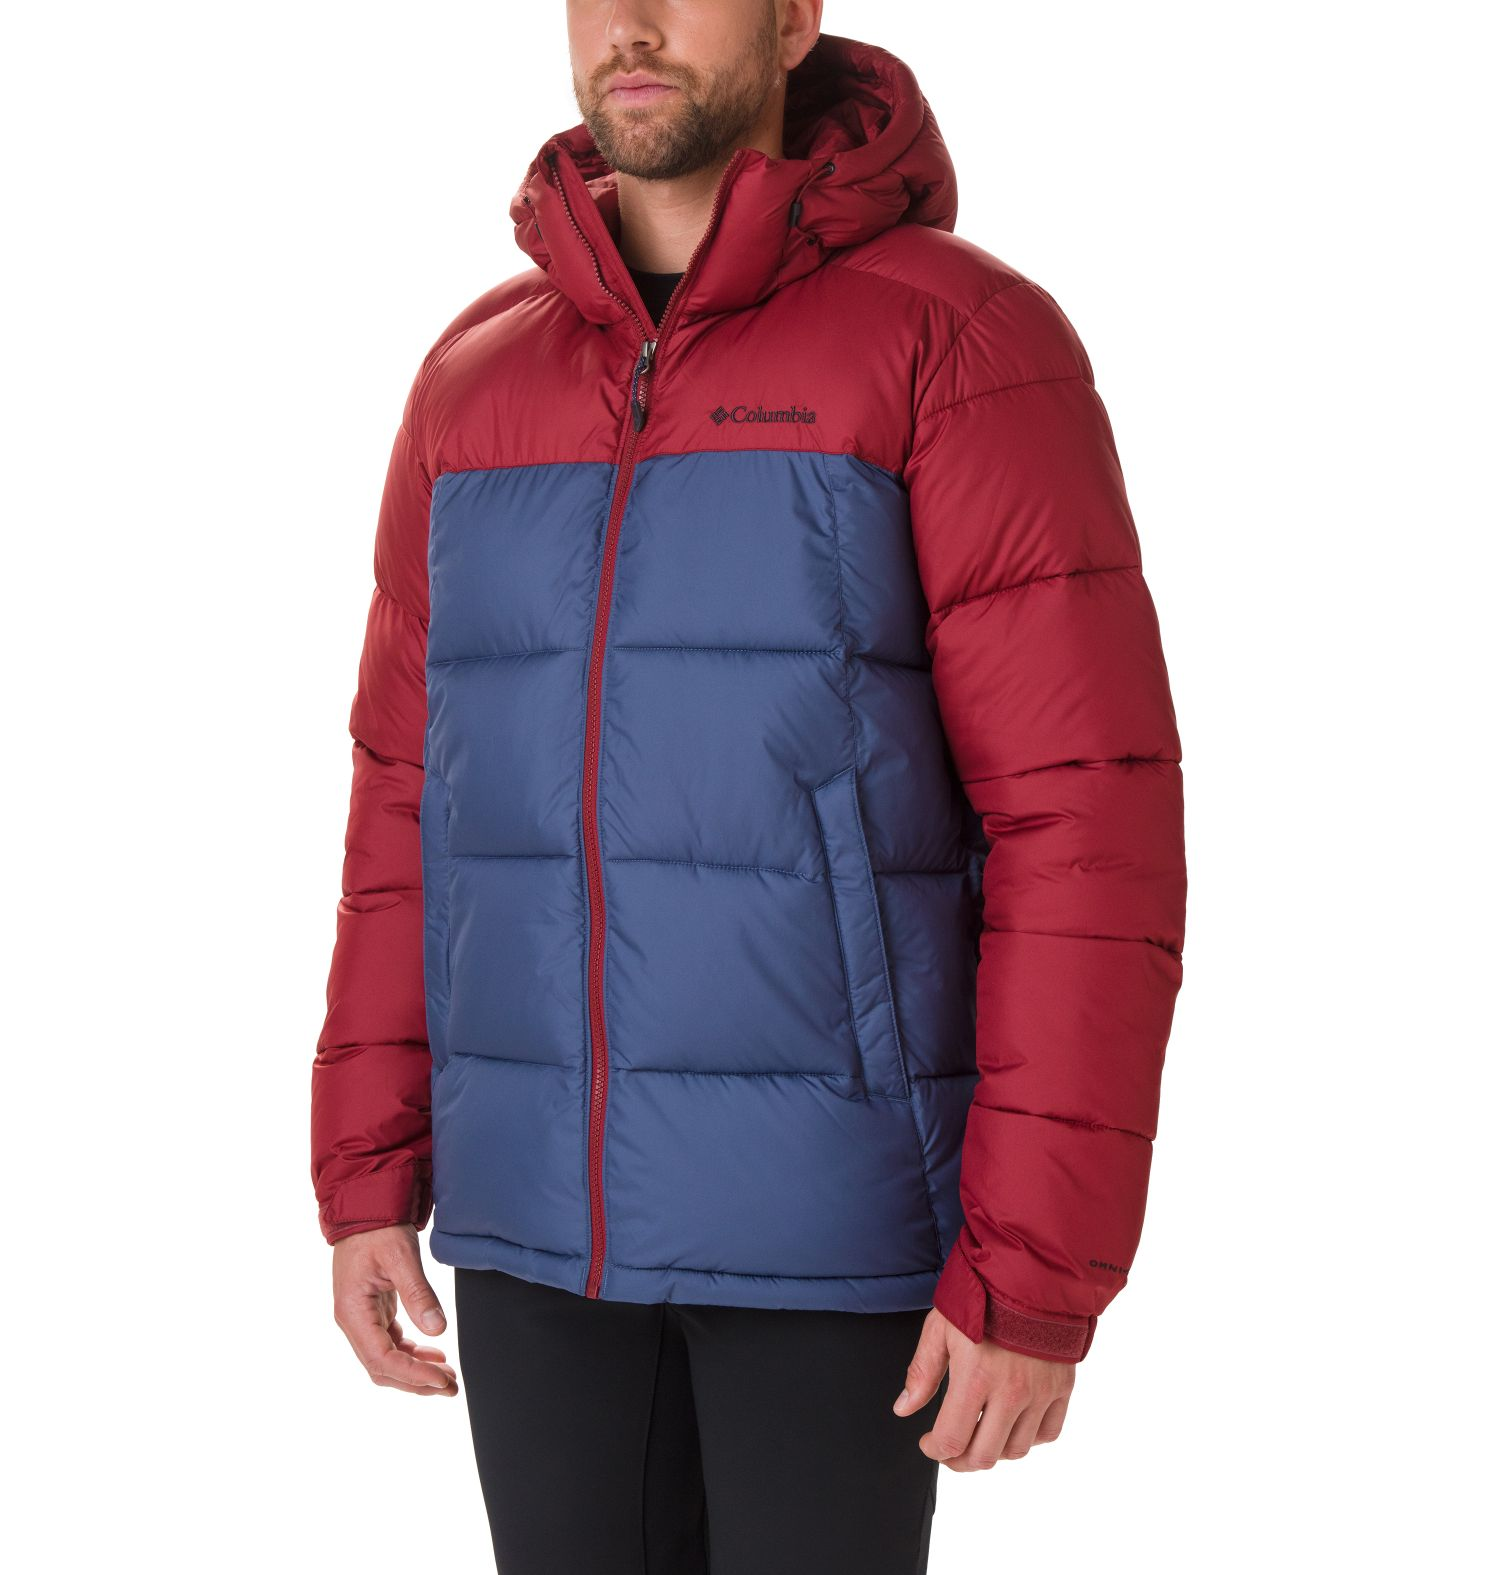 CAZADORA PIKE LAKE STORM-LITE DP II 100% POLYESTER Omni.HEAT THERMAL REFLECTIVE THERMARATOR WATER RESISTANT DARK MOUNTAIN/RED JASPER